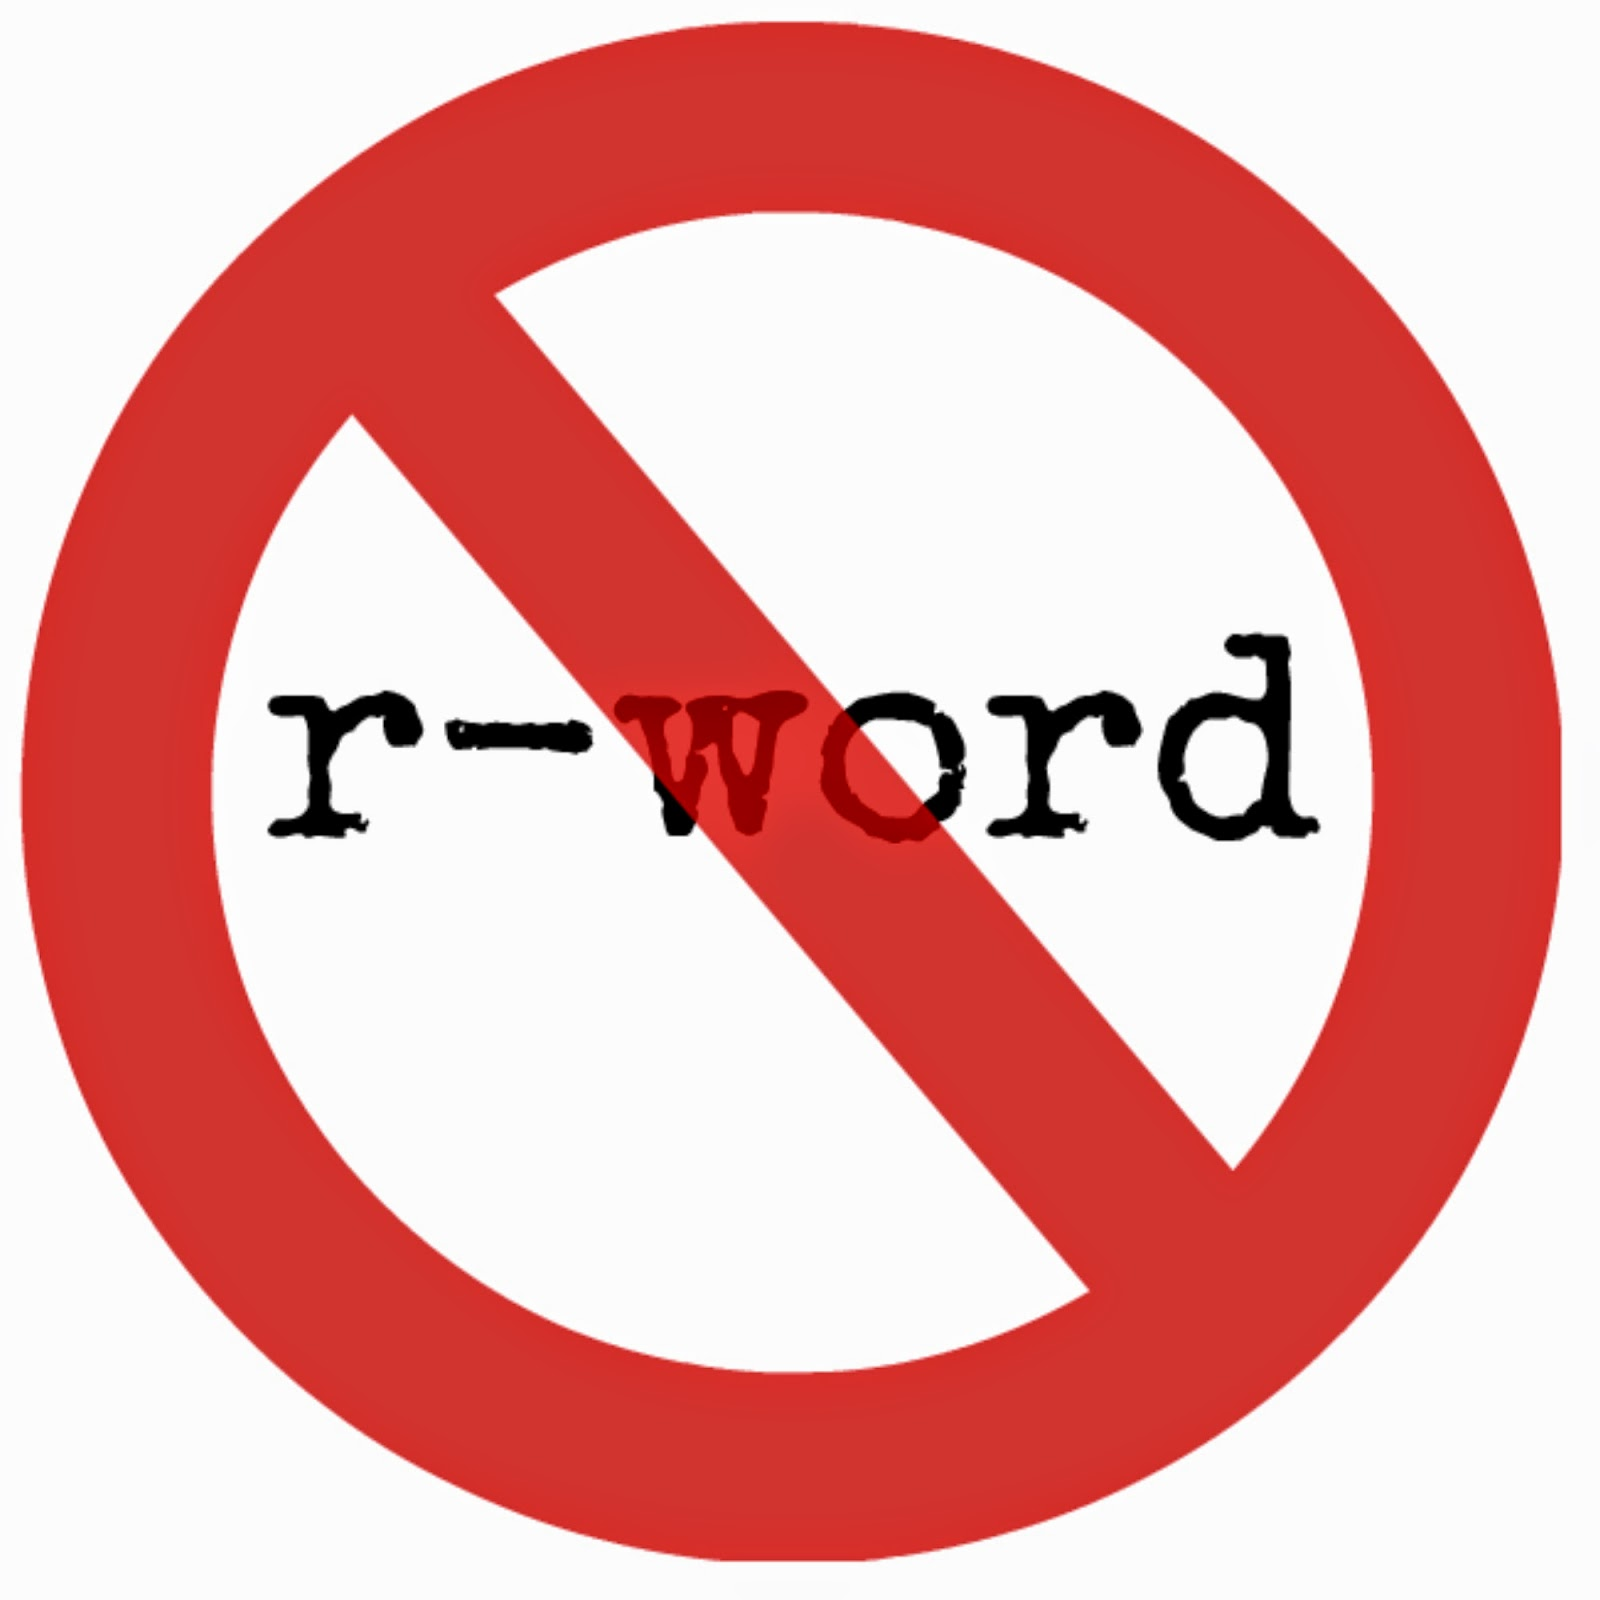 the word retard Fight ignorance with knowledge how to stop the use of the word retard.